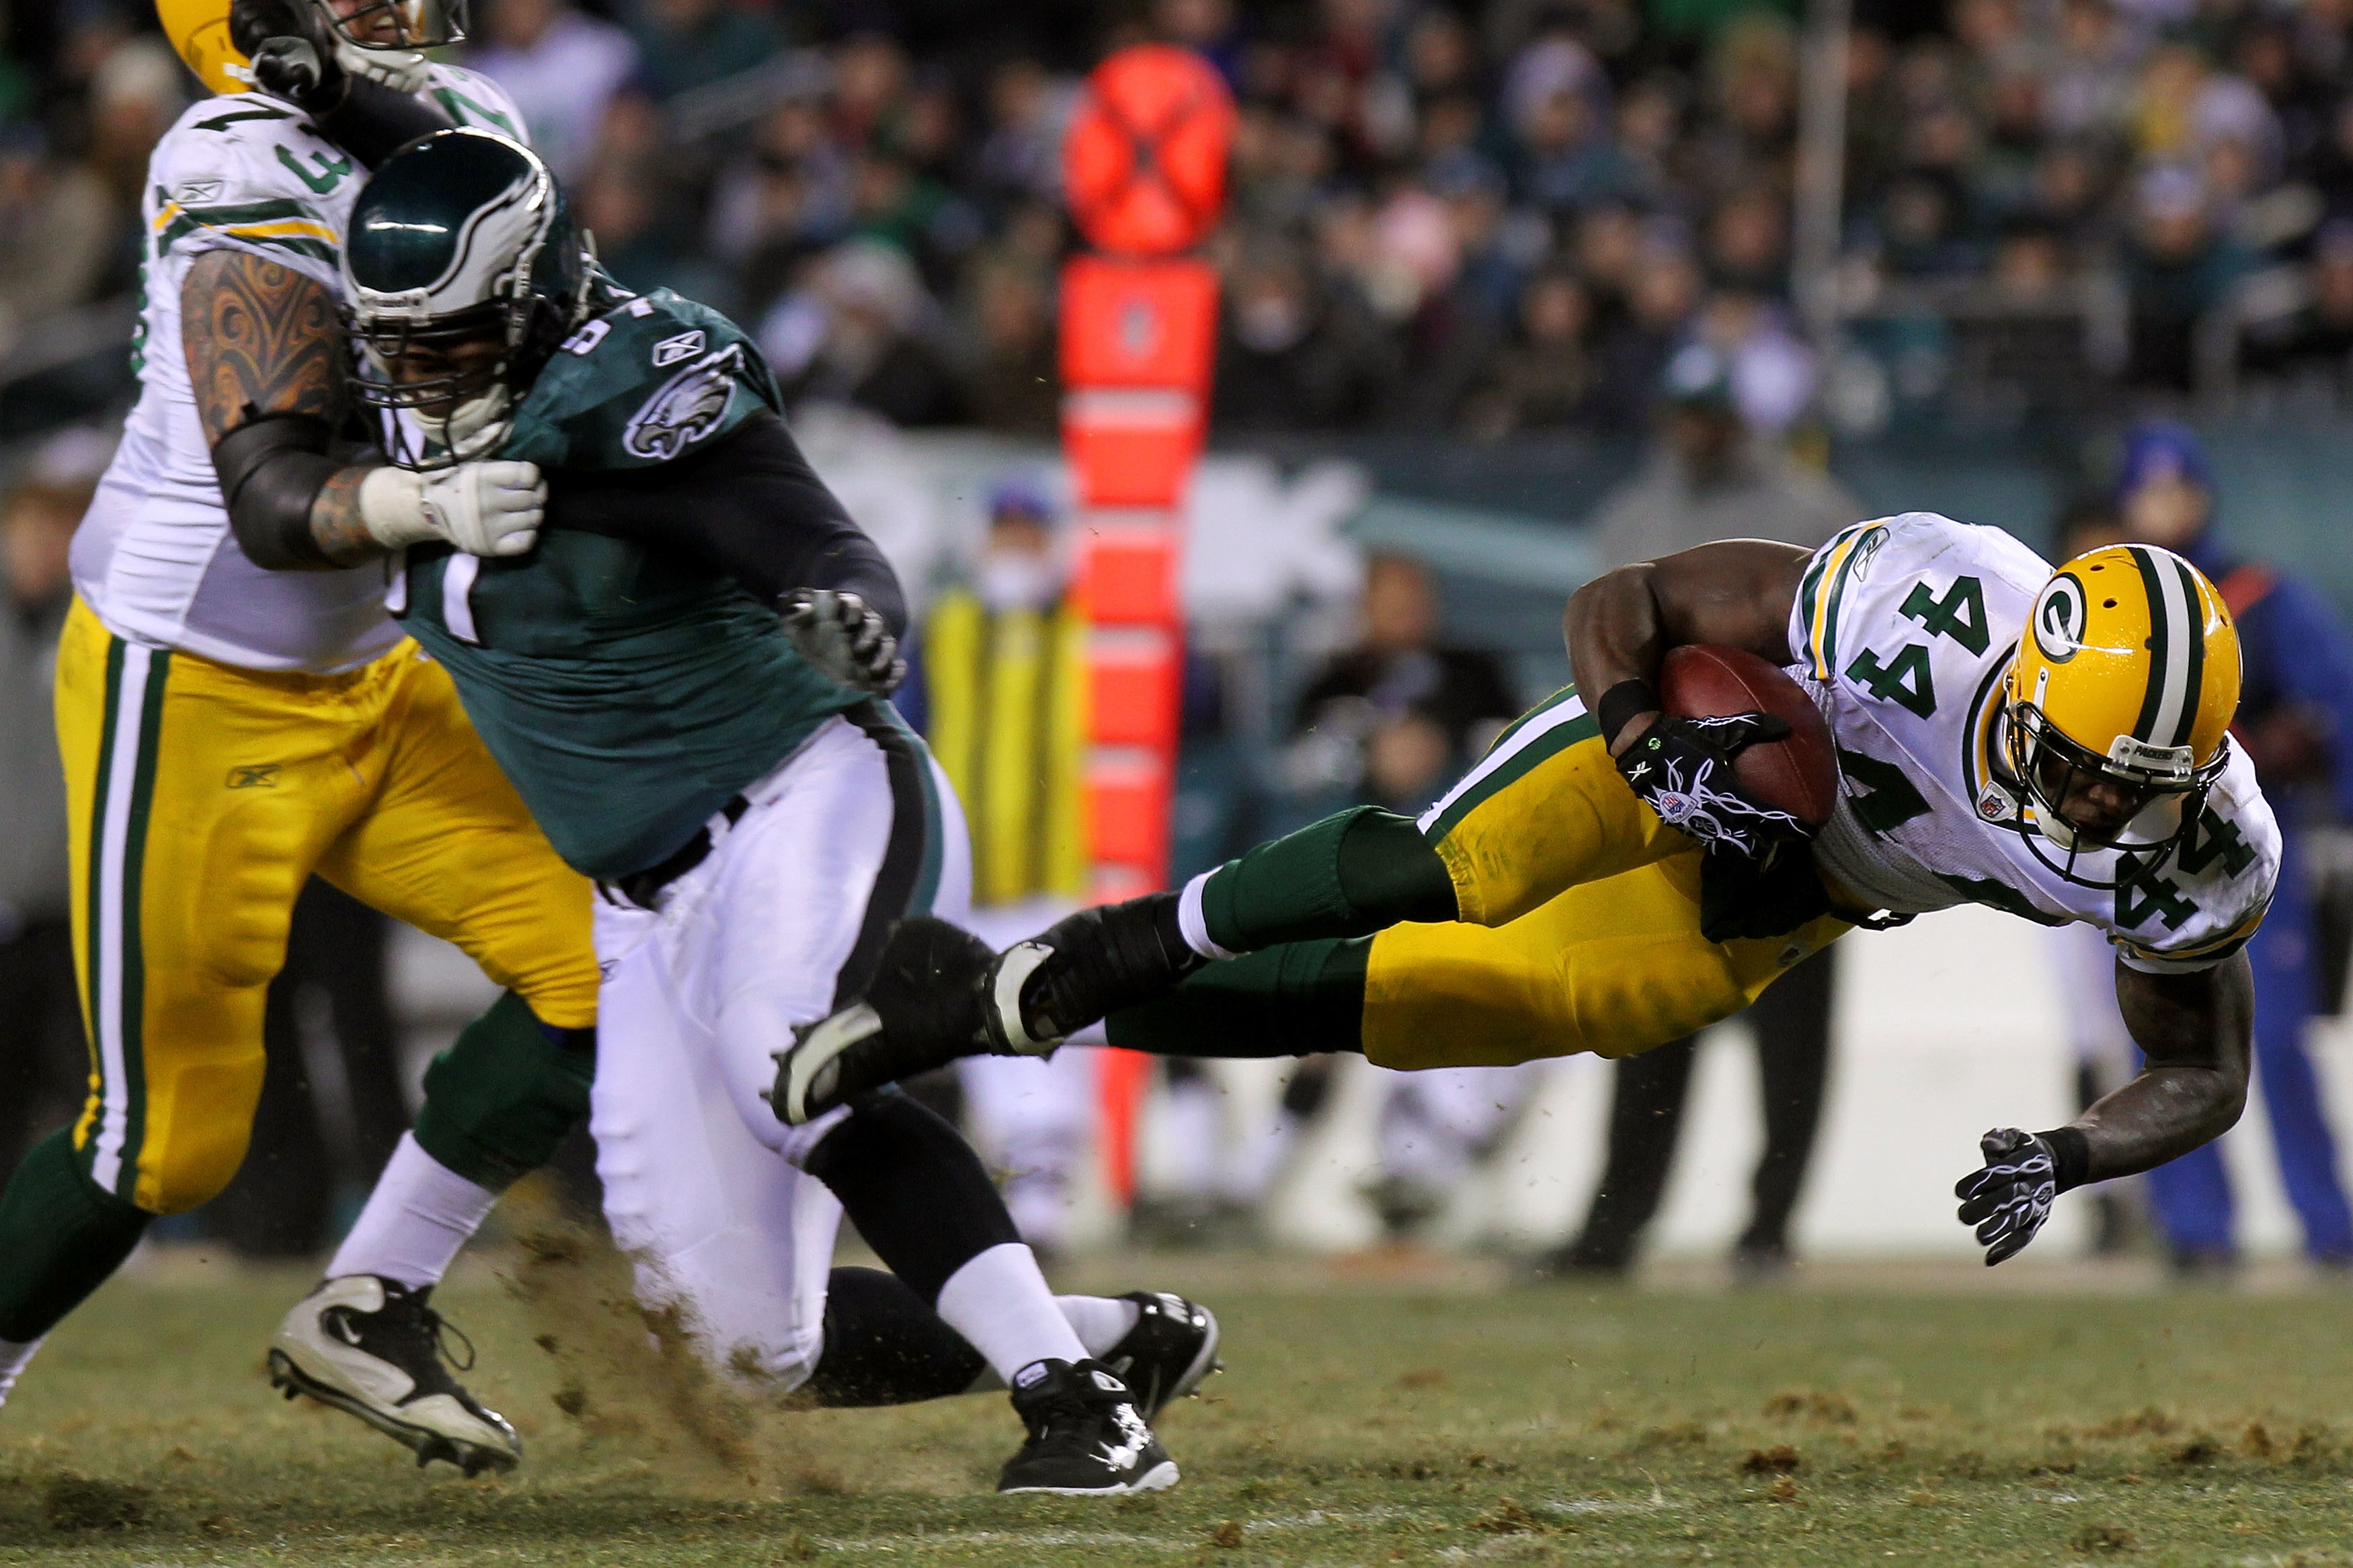 Can Packers rookie RB James Starks (right, #44) shred the Falcons the same way he did the Eagles?